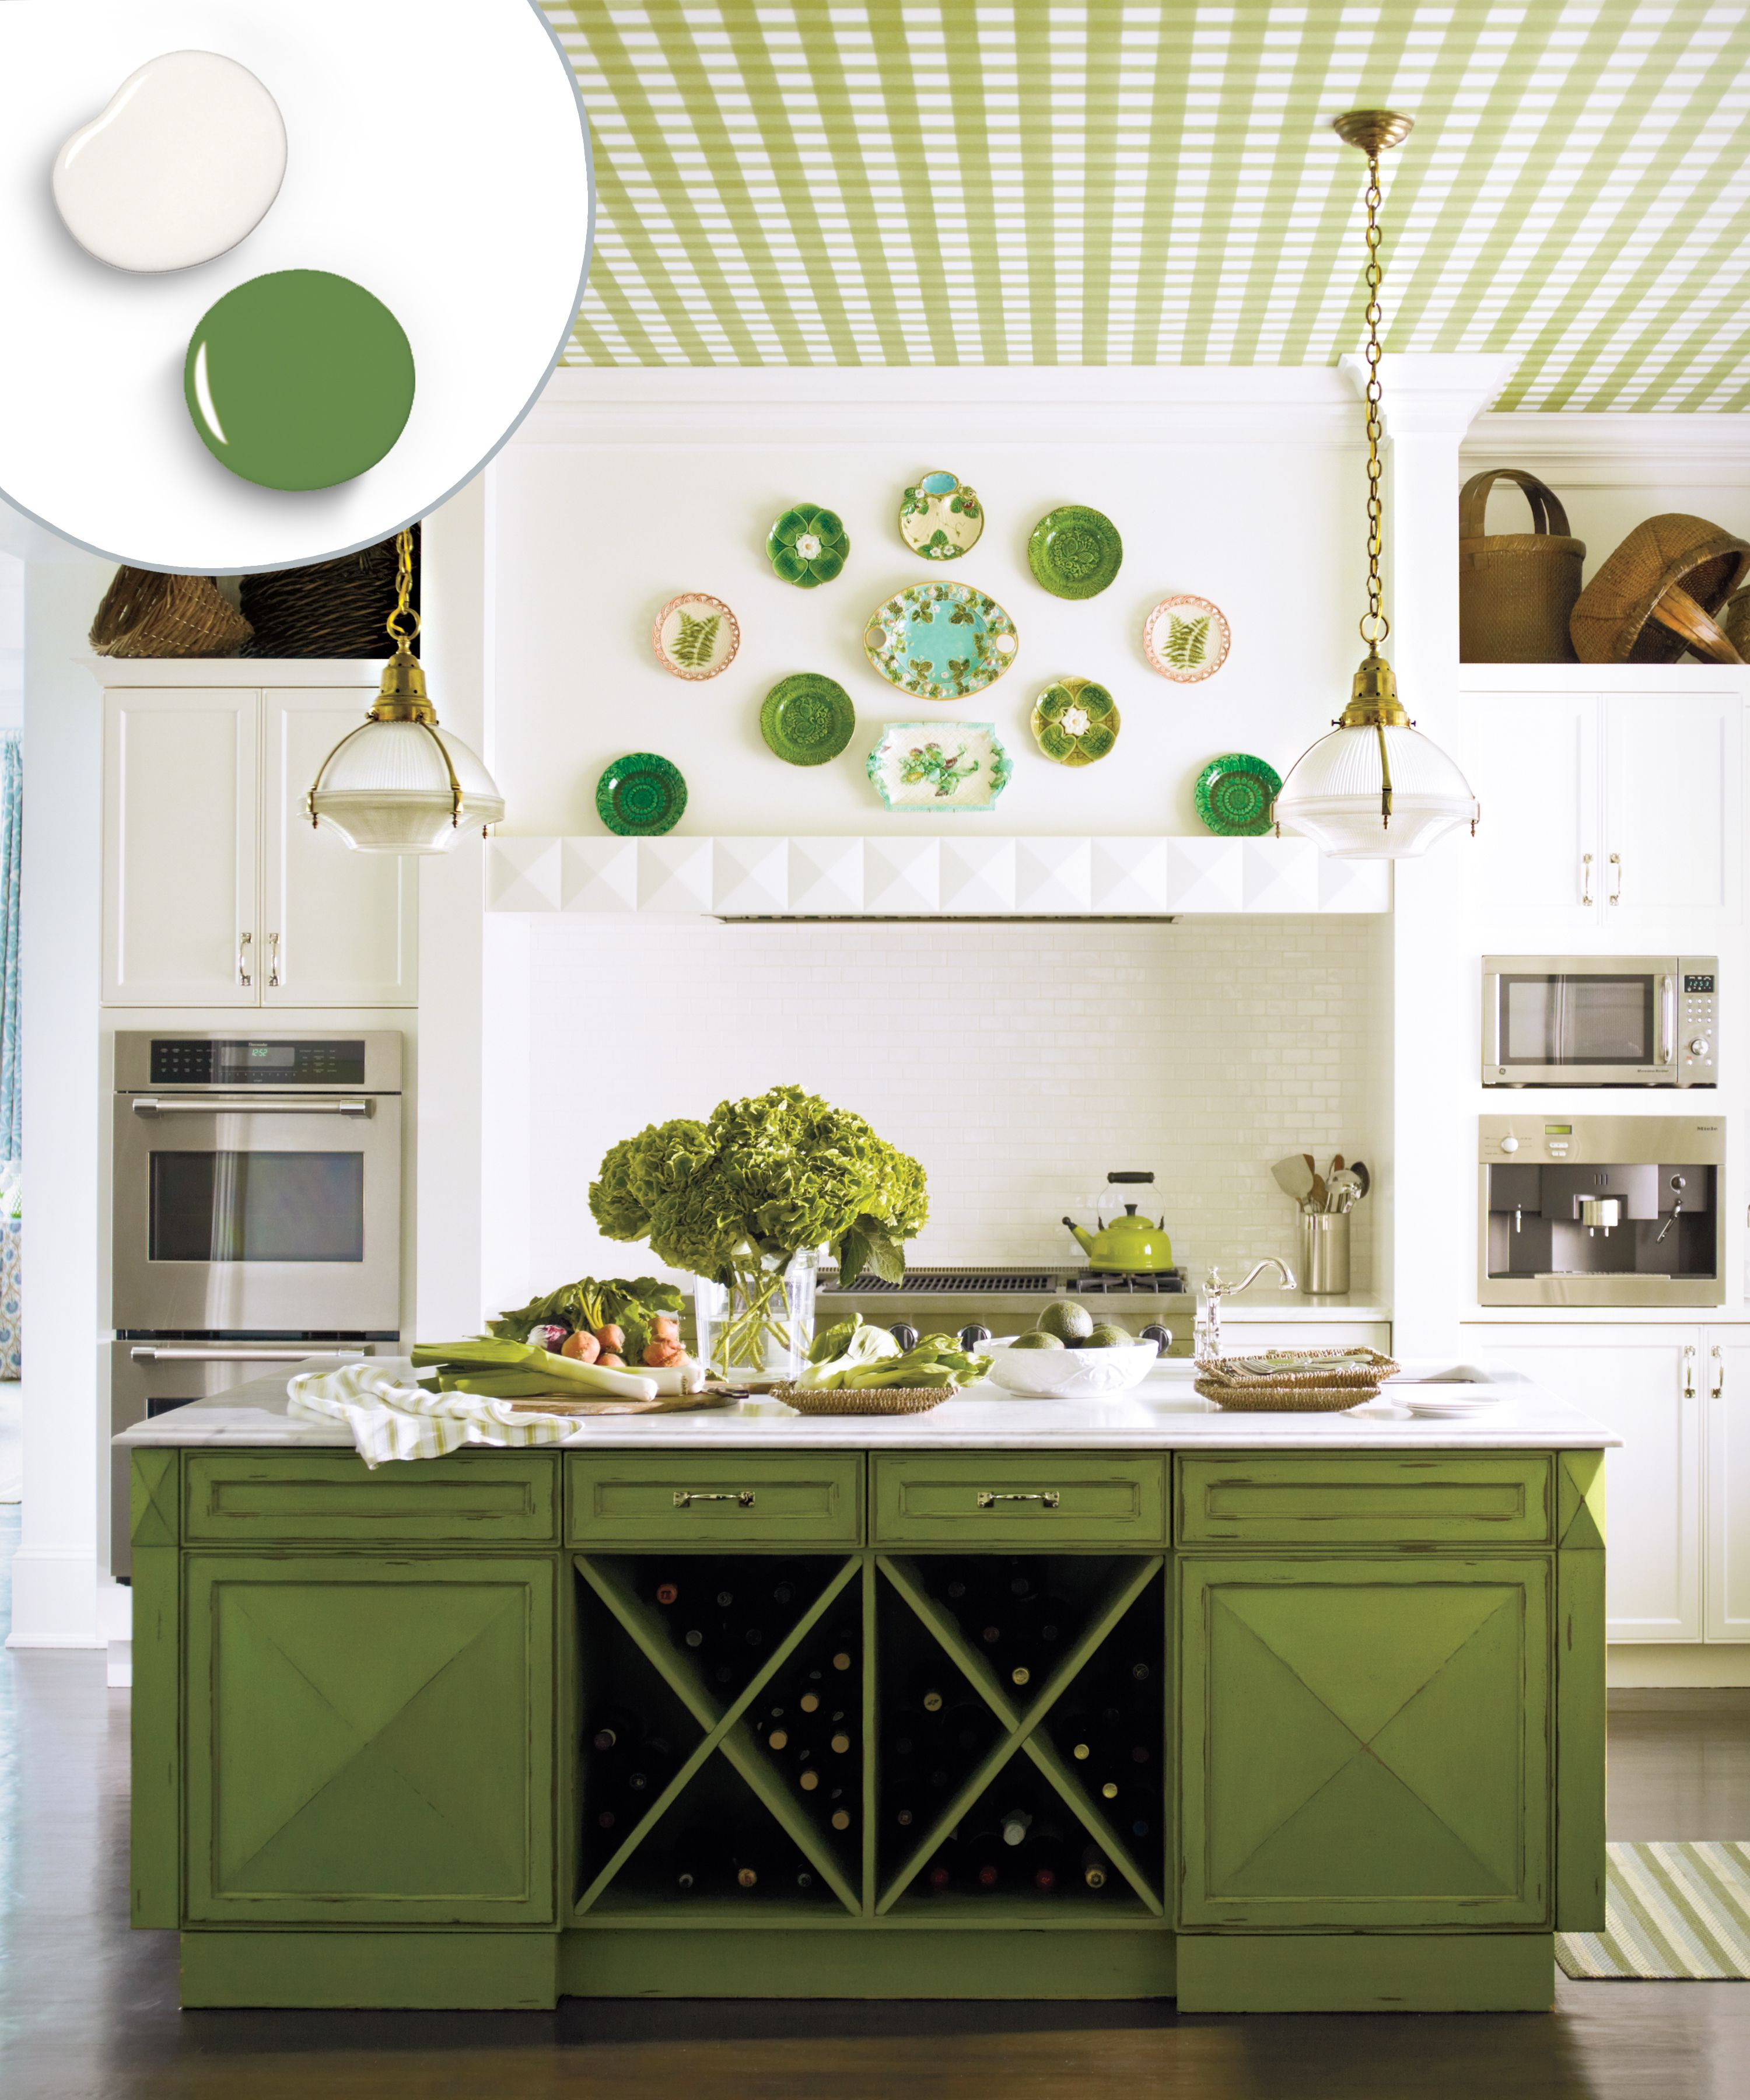 12 Kitchen Cabinet Color Combos That Really Cook Green Kitchen Cabinets Country Kitchen Decor Kitchen Cabinet Colors